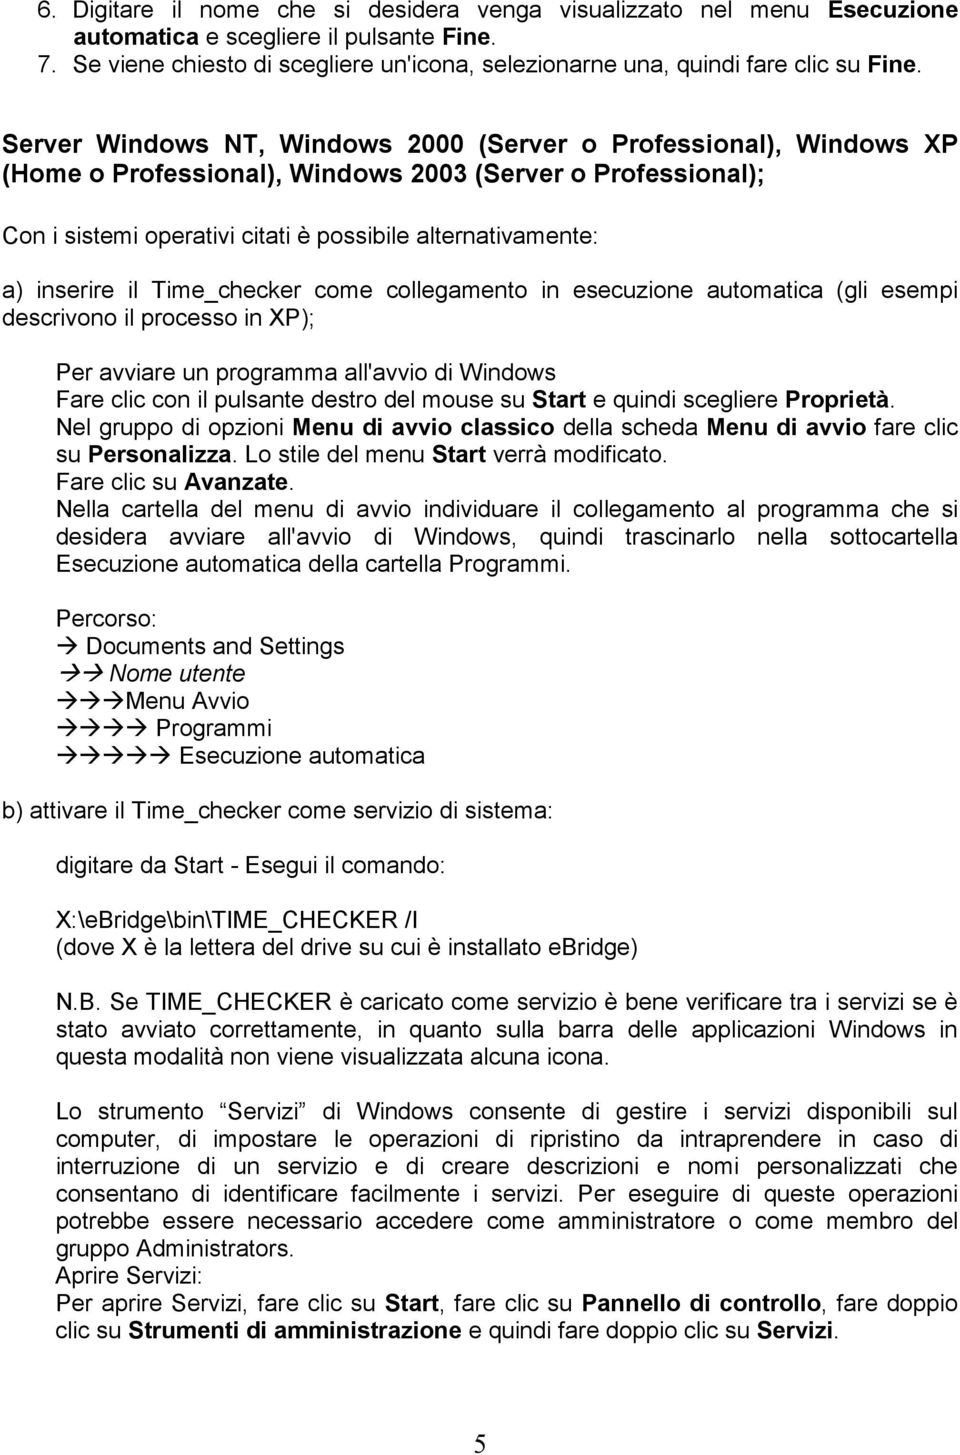 Server Windows NT, Windows 2000 (Server o Professional), Windows XP (Home o Professional), Windows 2003 (Server o Professional); Con i sistemi operativi citati è possibile alternativamente: a)